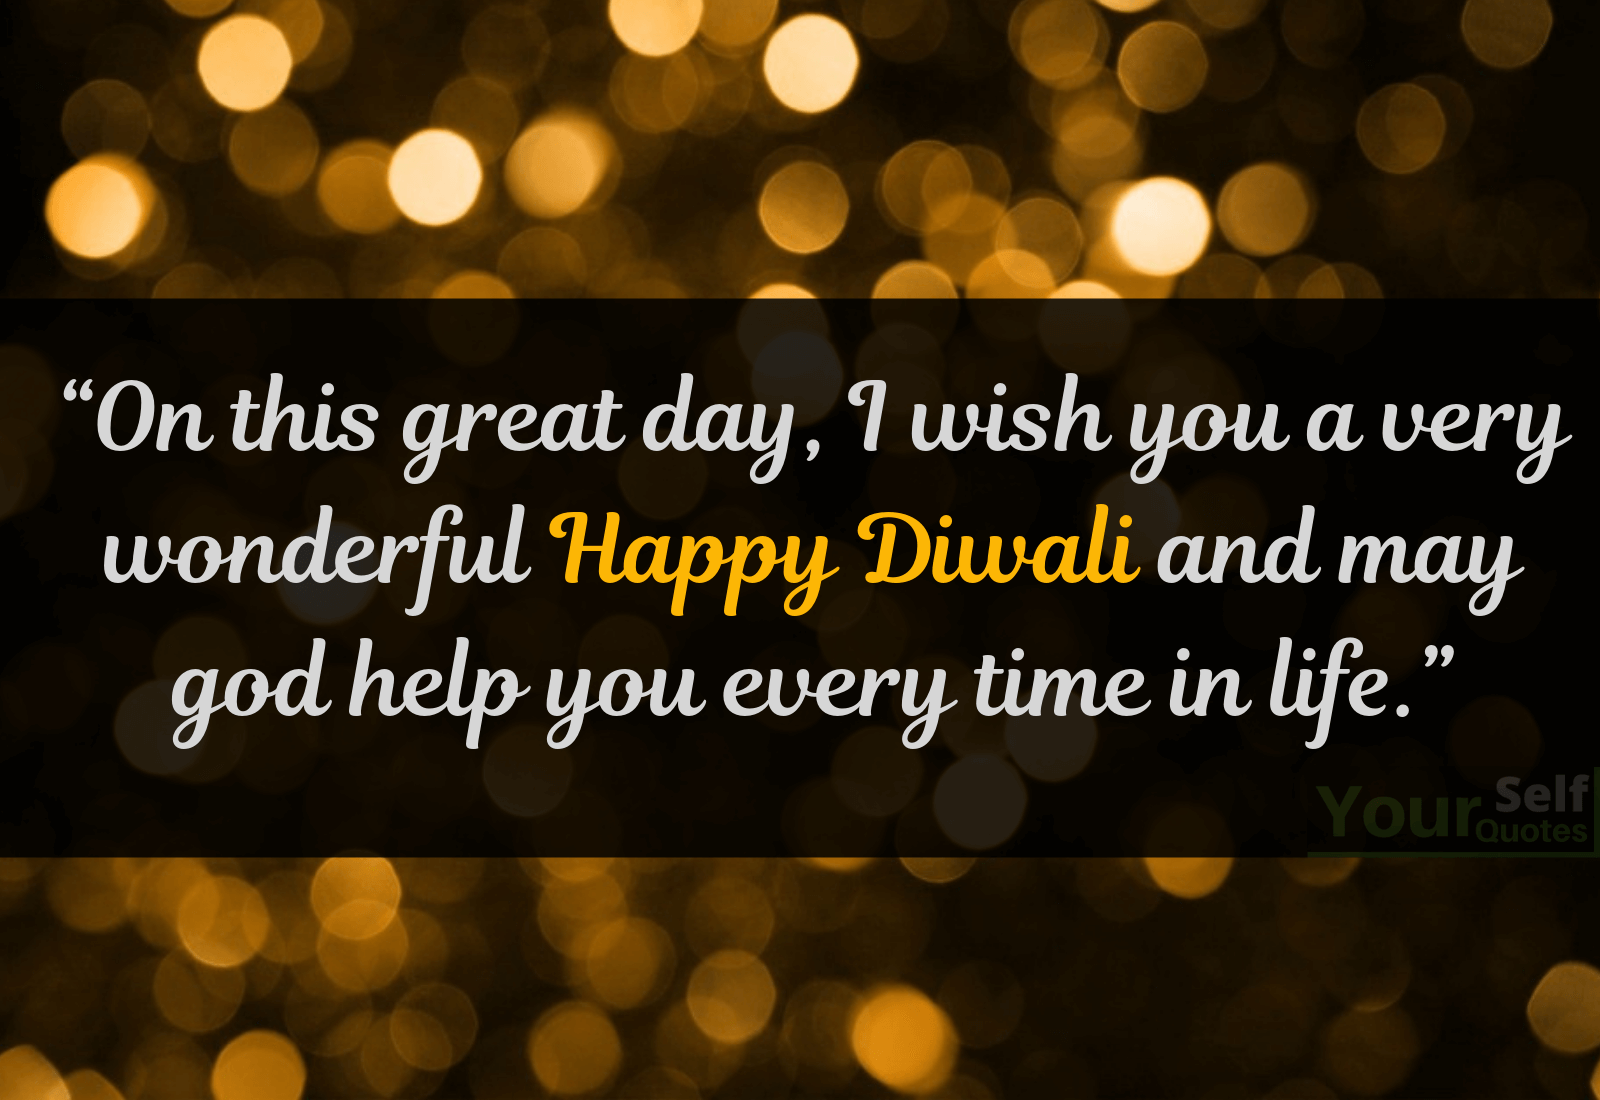 Wonderful Happy Diwali Wishes